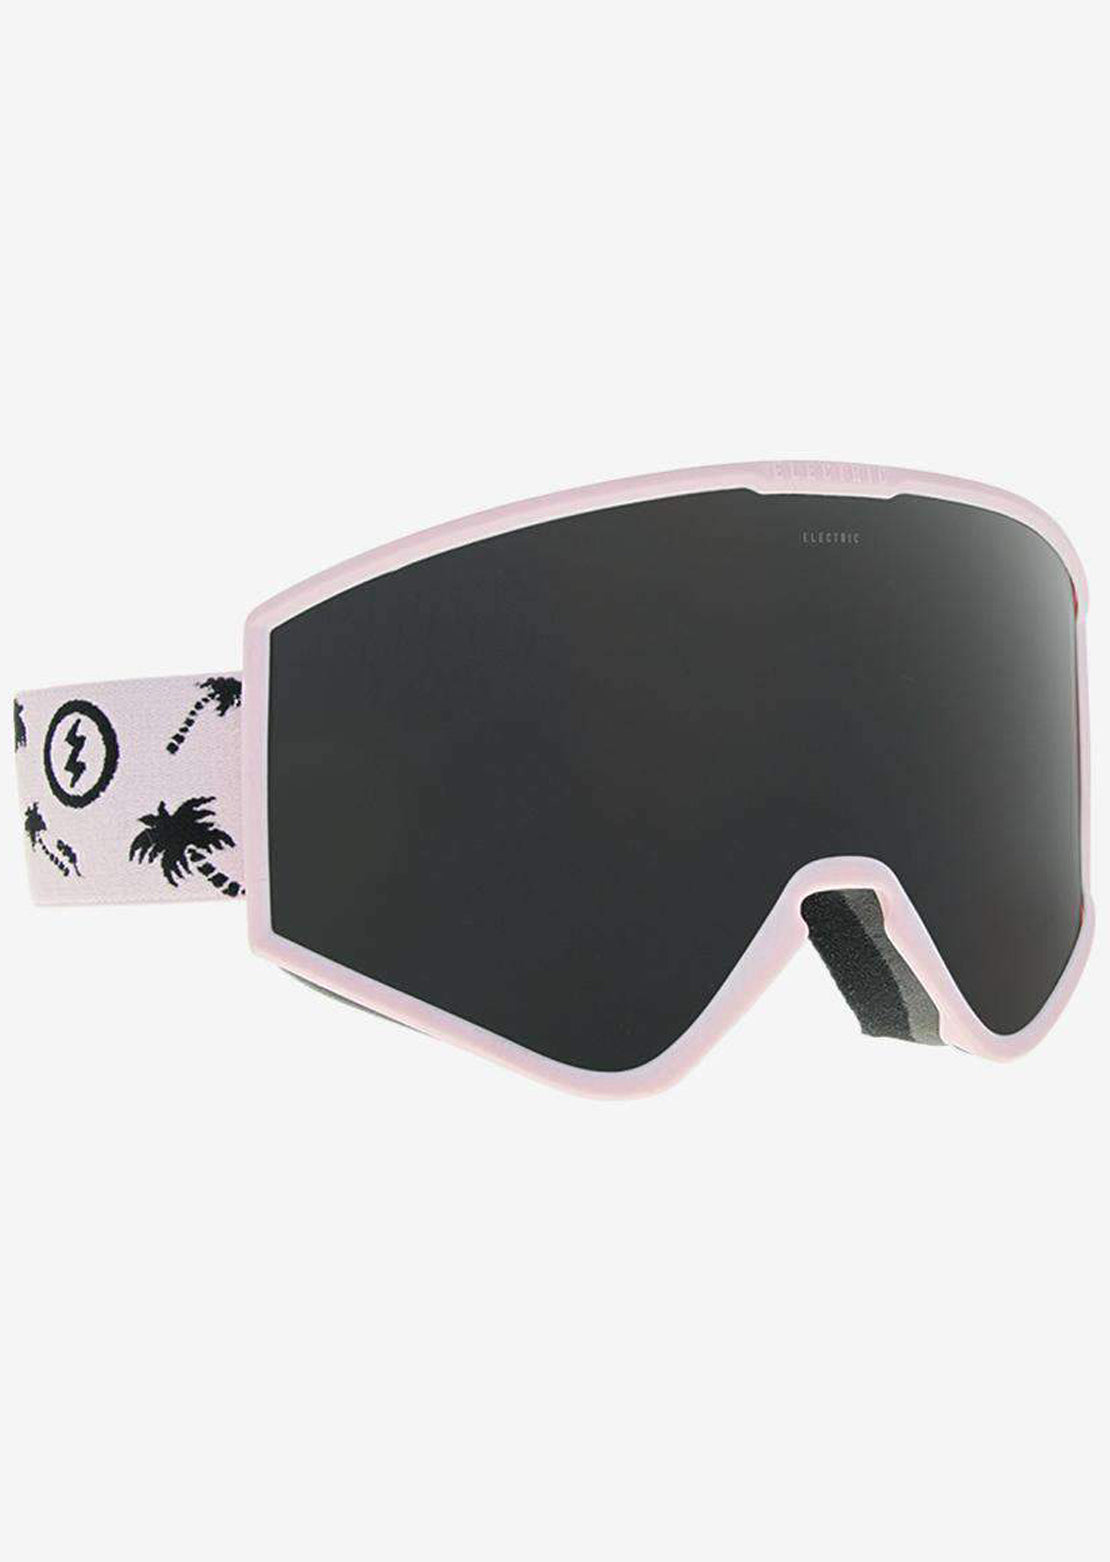 Electric Kleveland Snow Goggles Possy Pink/Jet Black